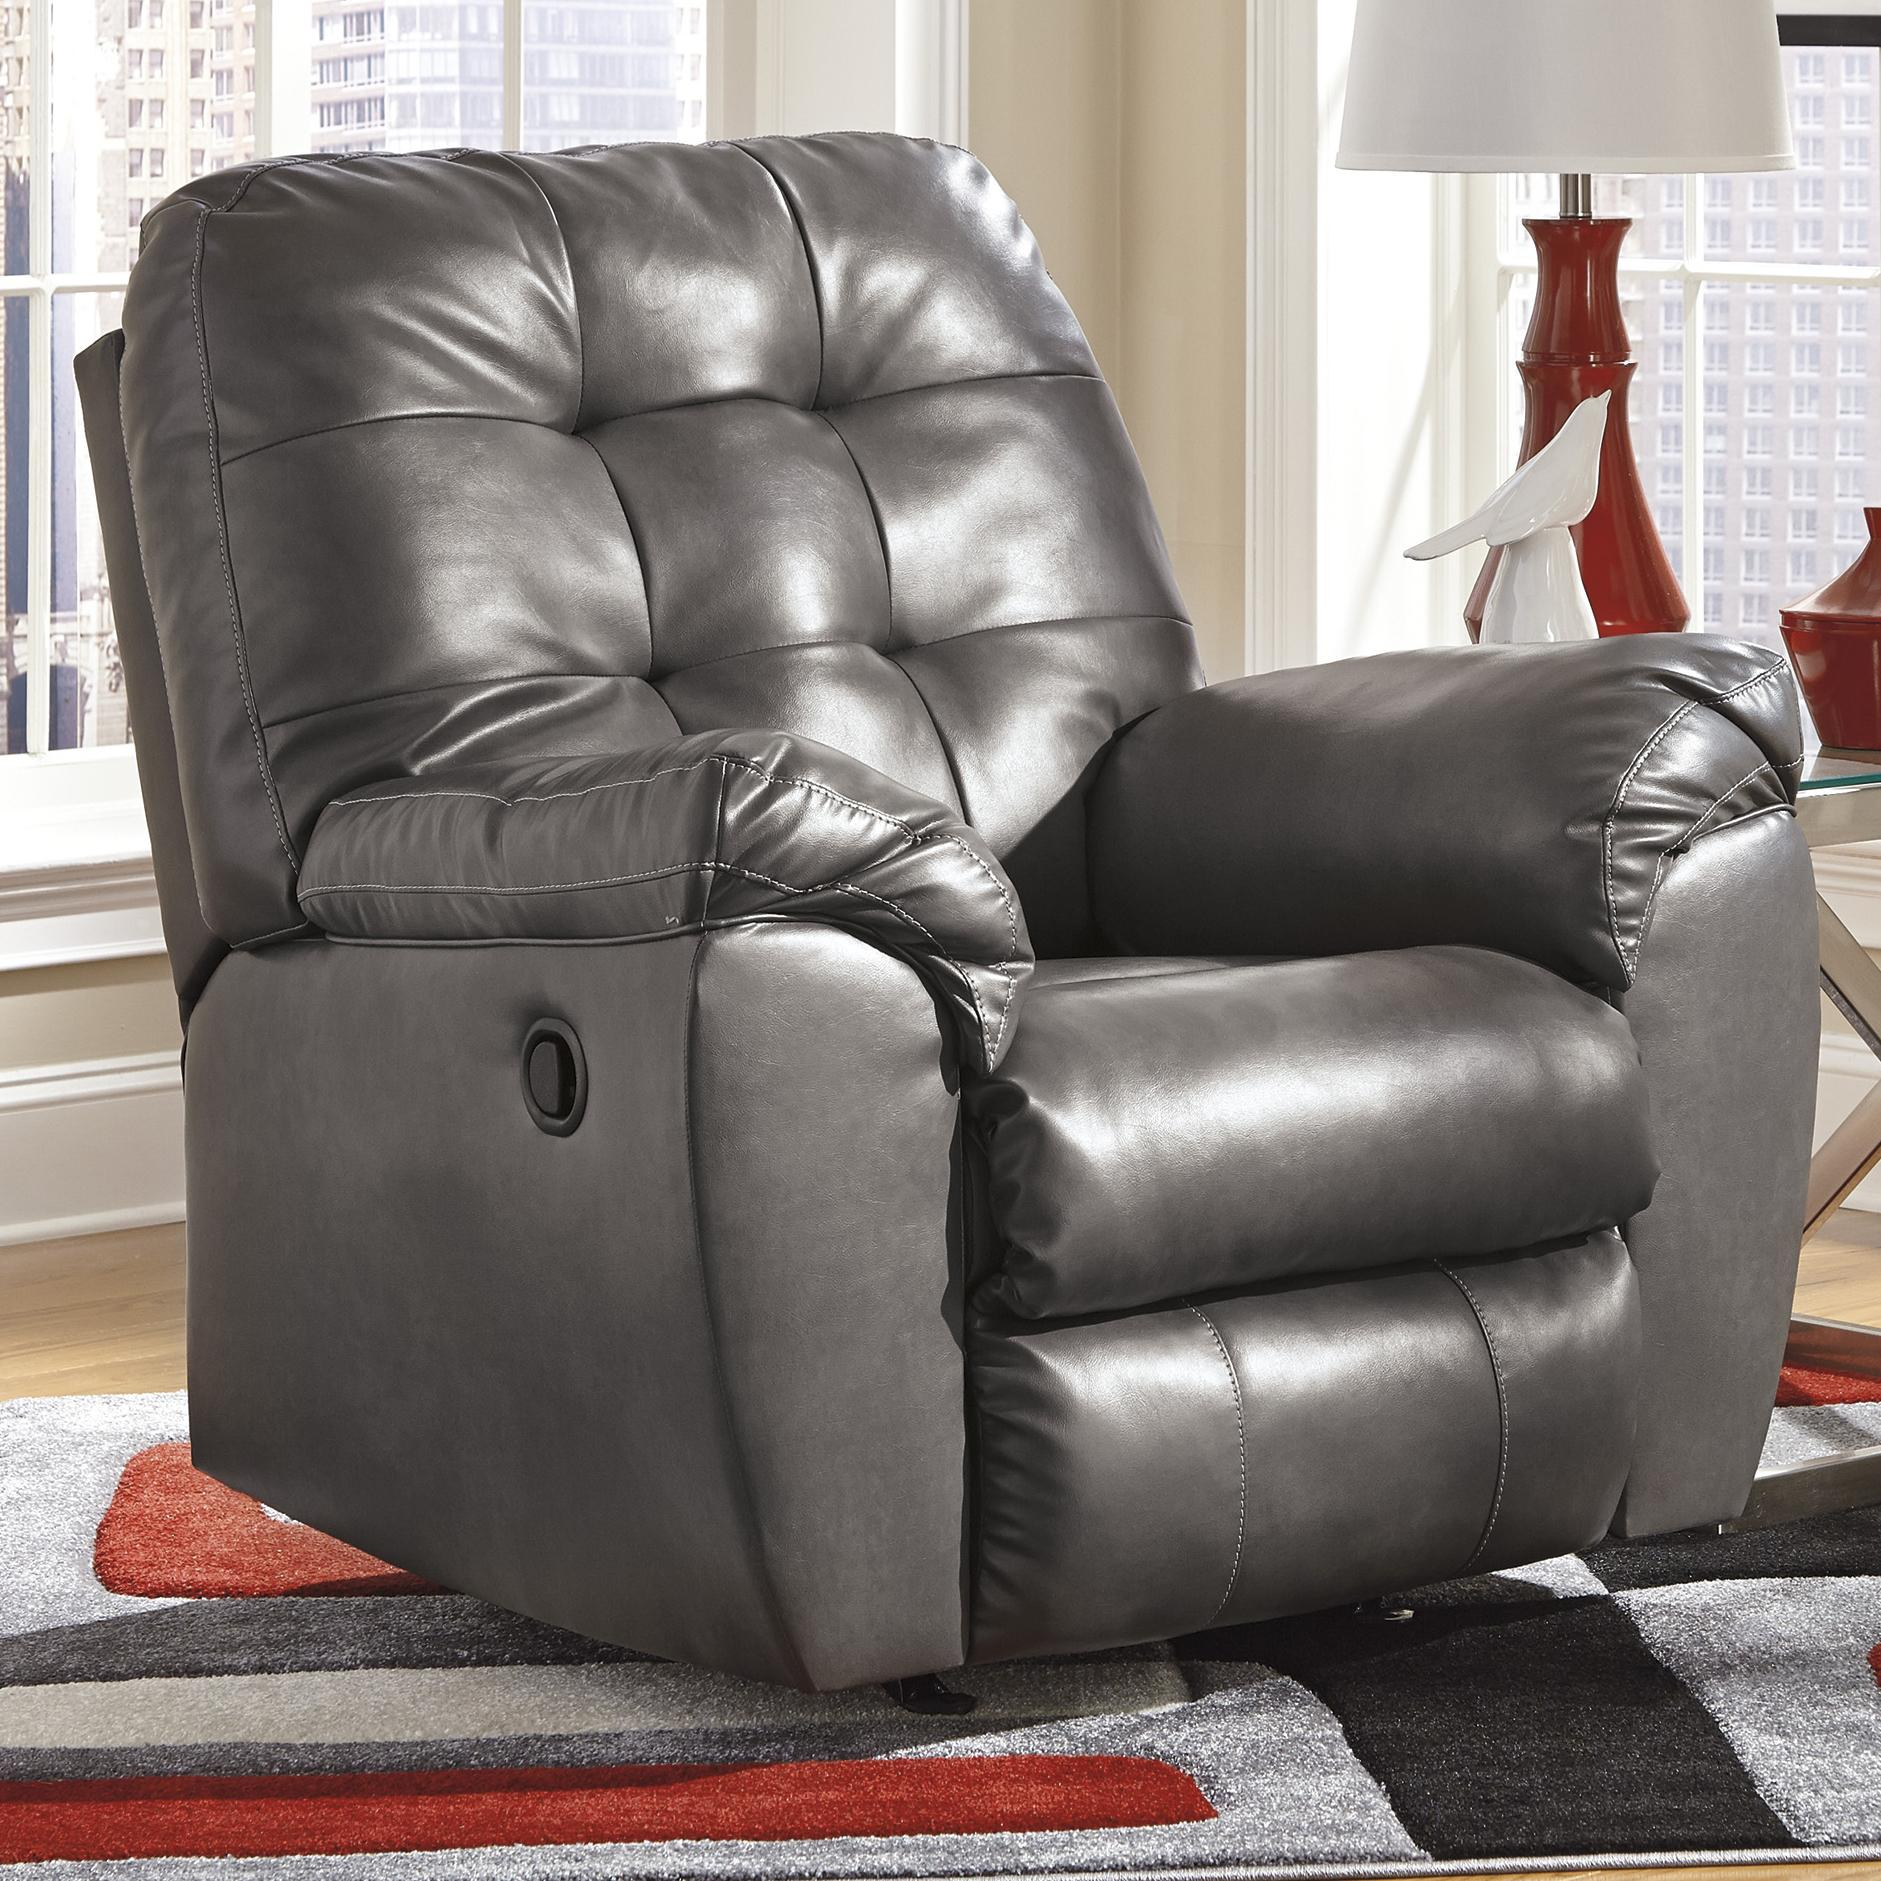 Signature Design by Ashley Alliston DuraBlend® - Gray Rocker Recliner - Item Number 2010225 & Signature Design by Ashley Alliston DuraBlend® - Gray Rocker ... islam-shia.org